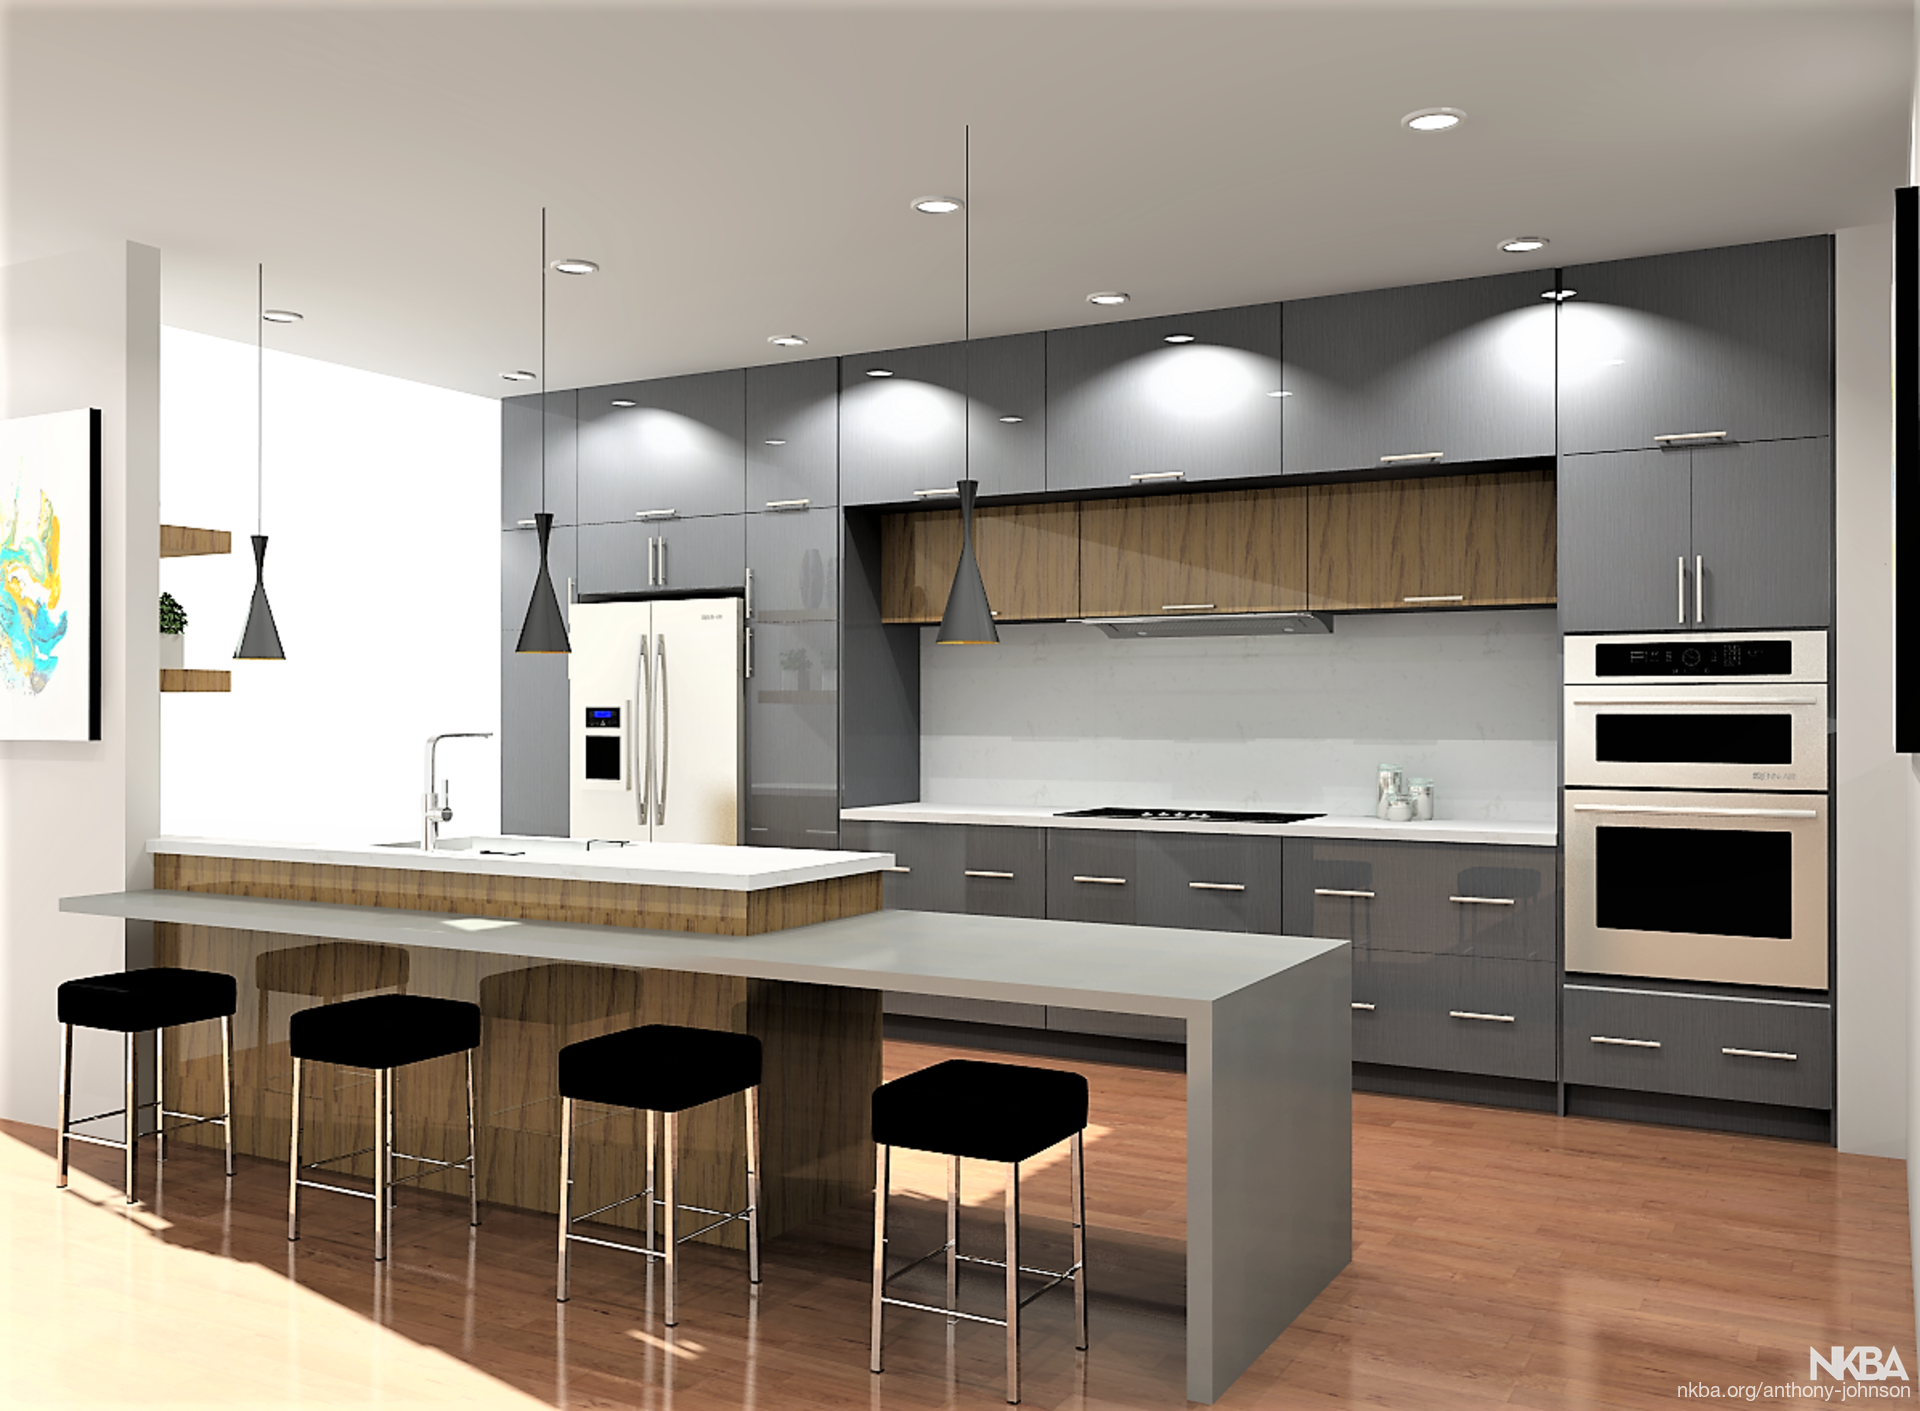 Modern Kitchen Design (Hollywood) - NKBA on Modern Kitchen Design  id=14156